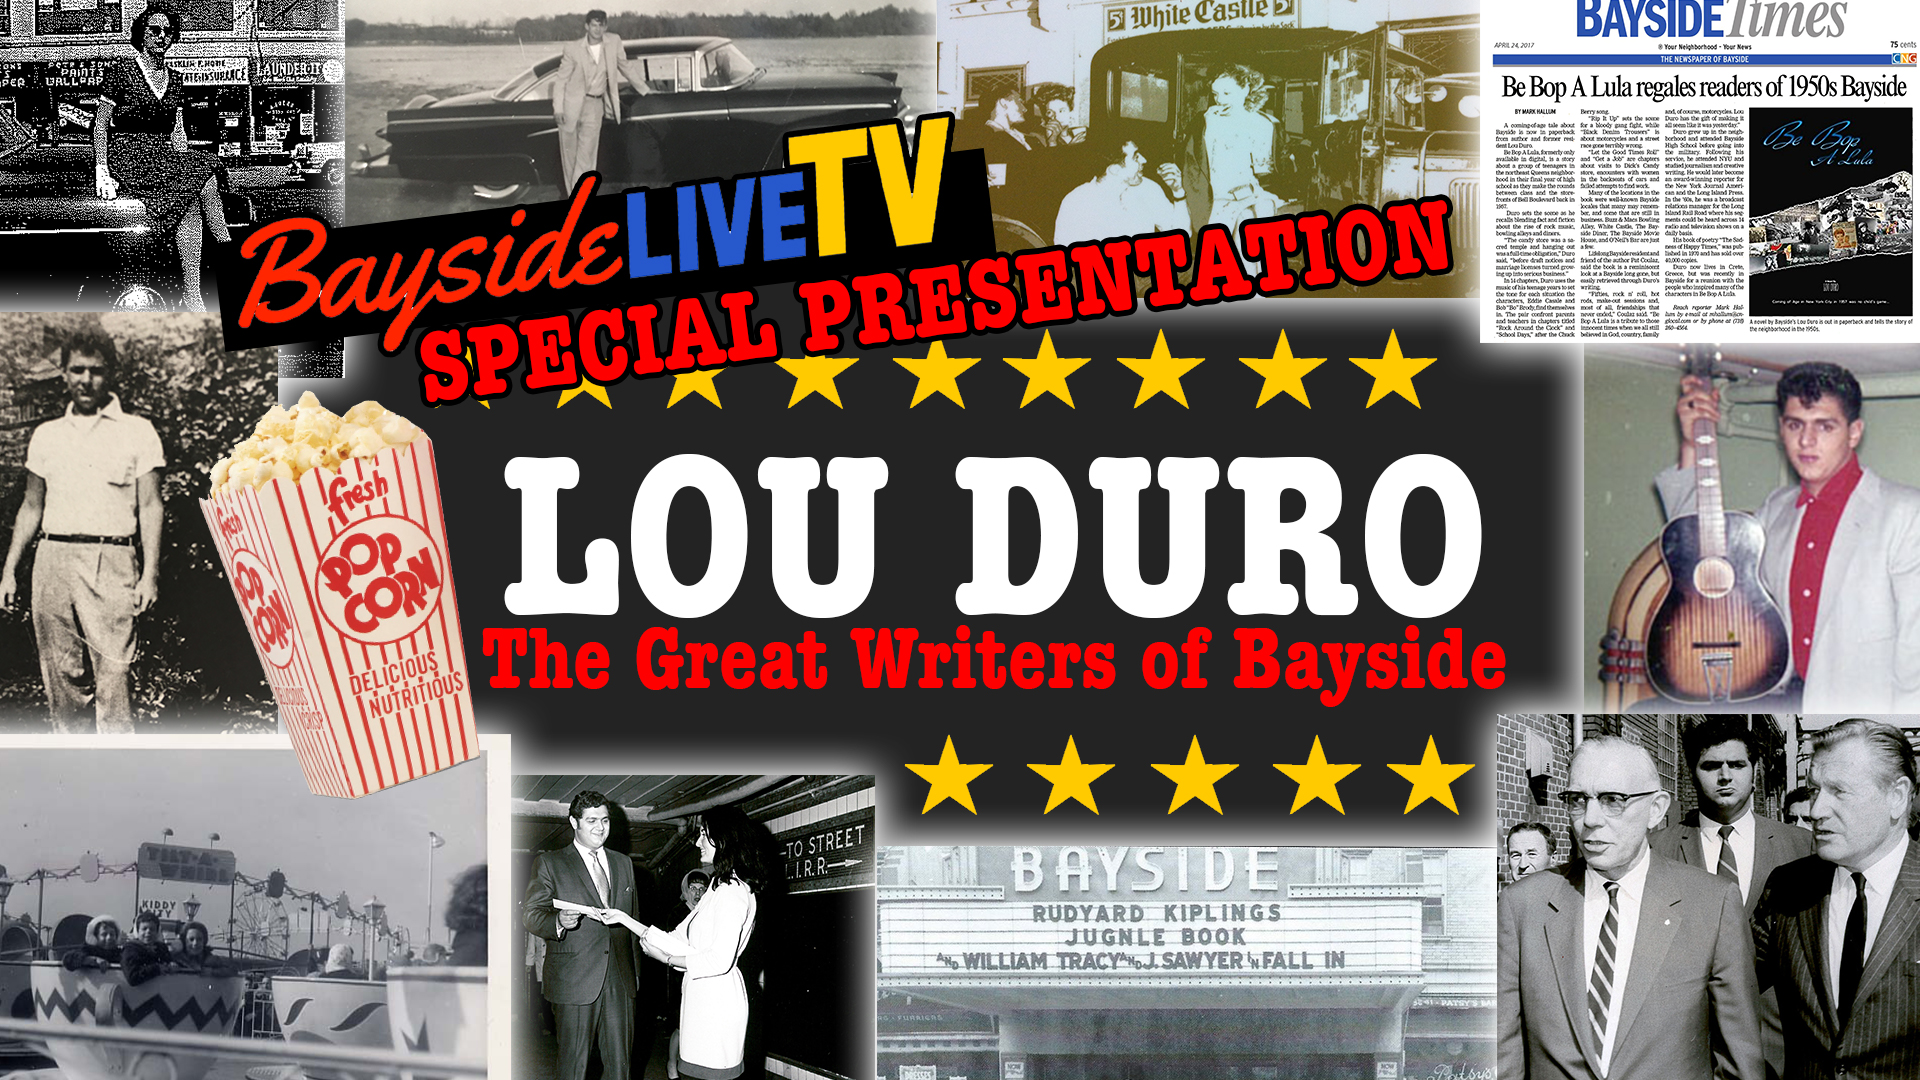 Lou Duro – The Great Writers of Bayside